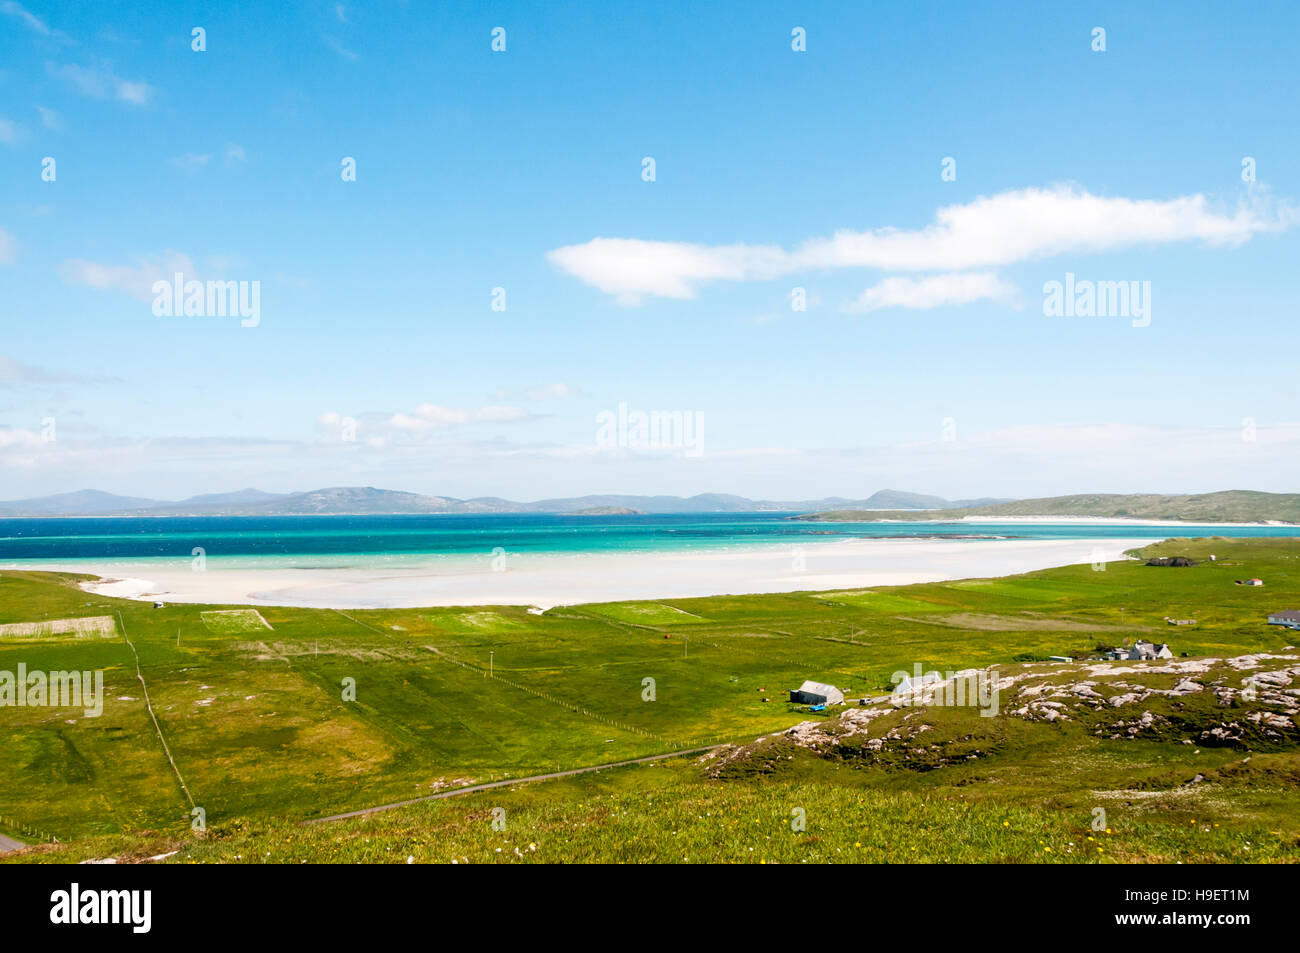 The beach of Tràigh Sgùrabhal in the north of the Isle of Barra, in the Outer Hebrides. - Stock Image